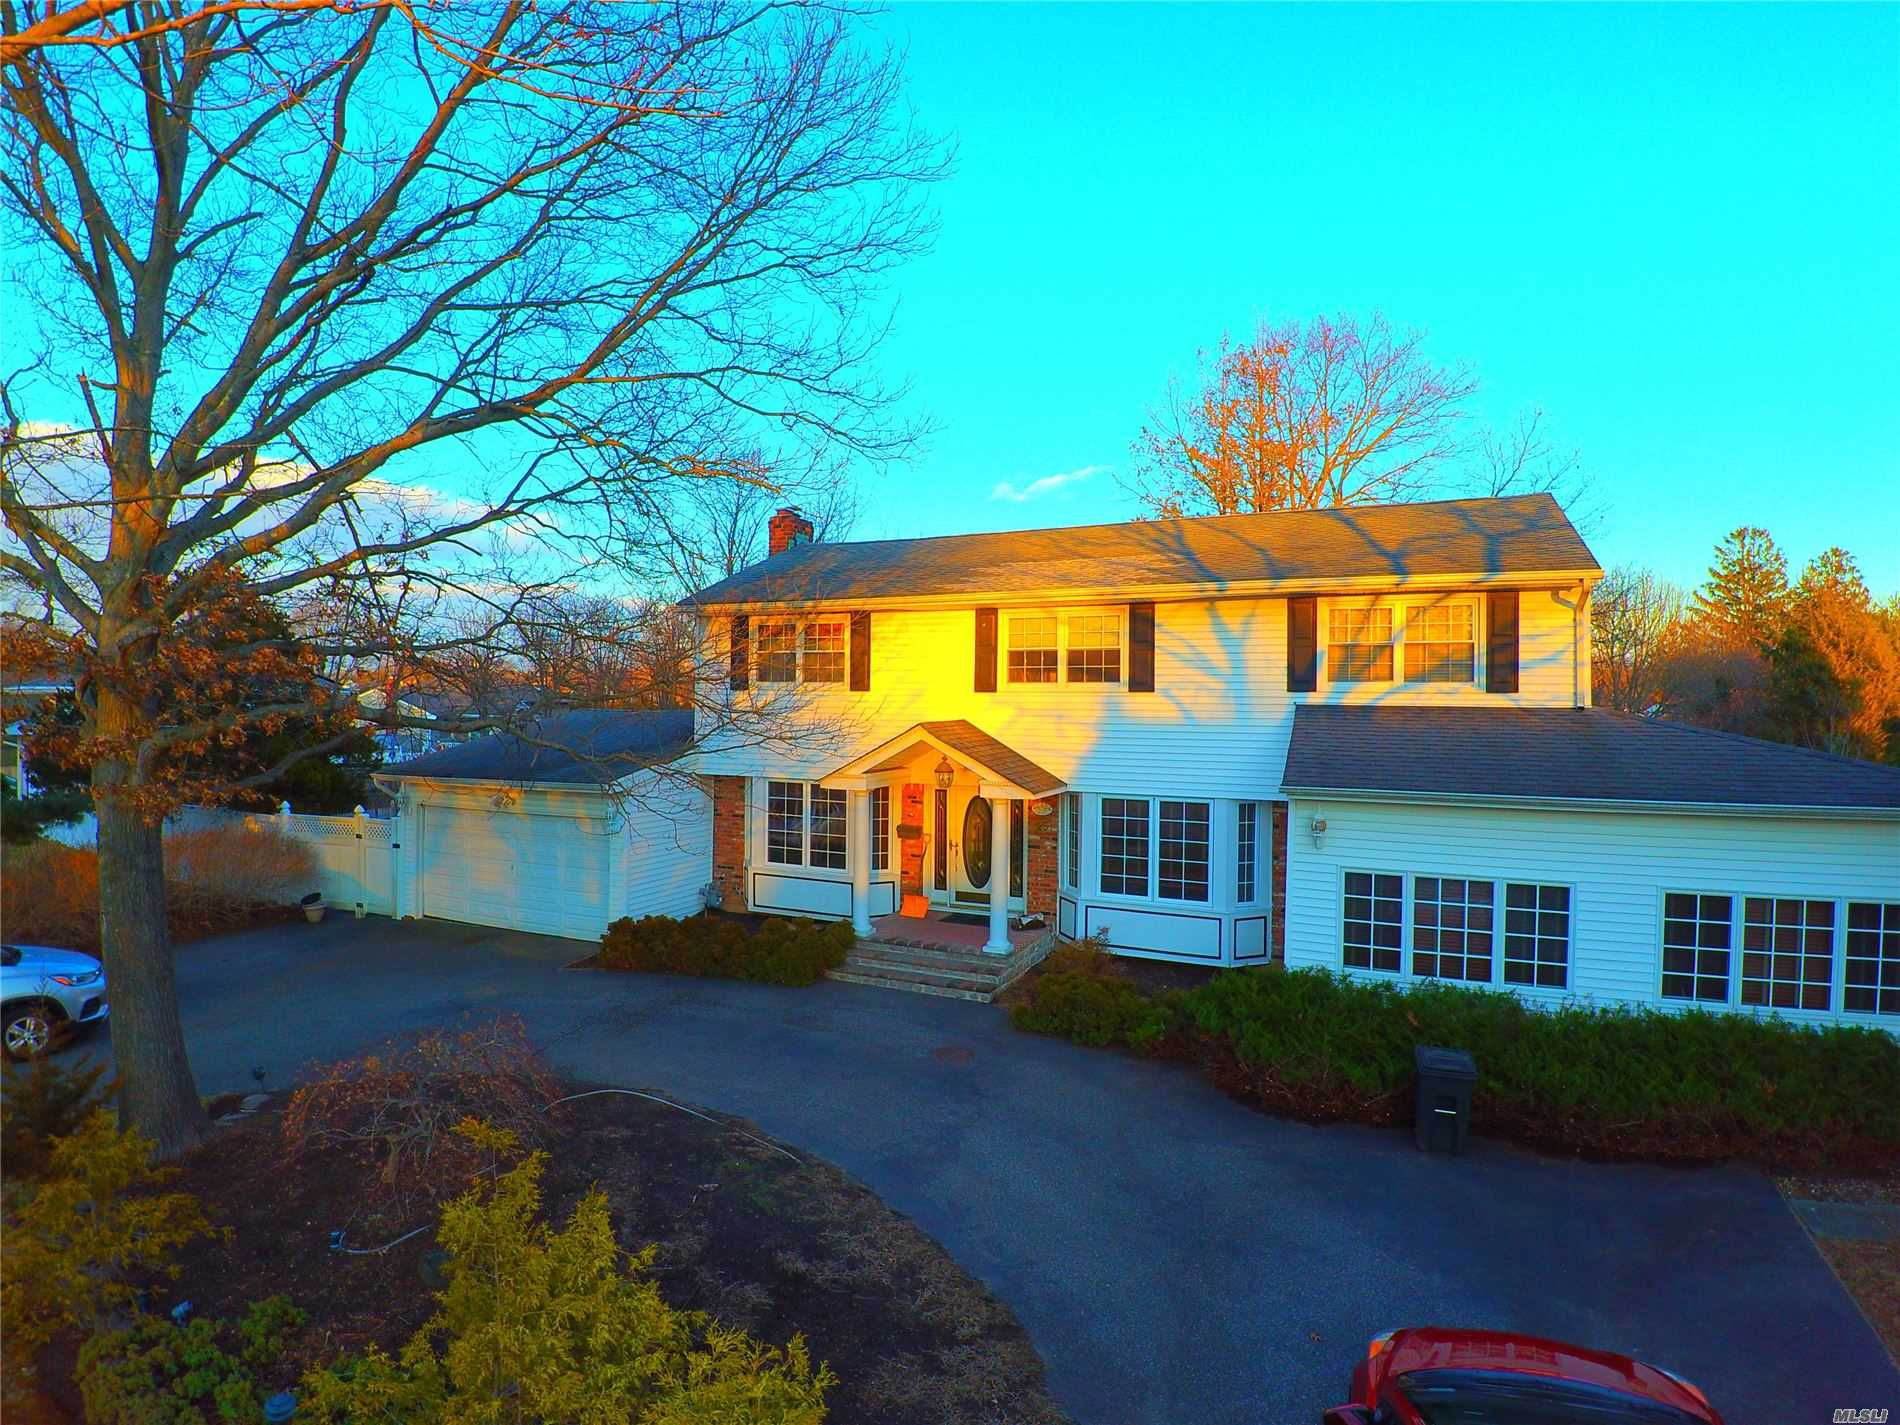 25 Radburn Dr - Commack, New York